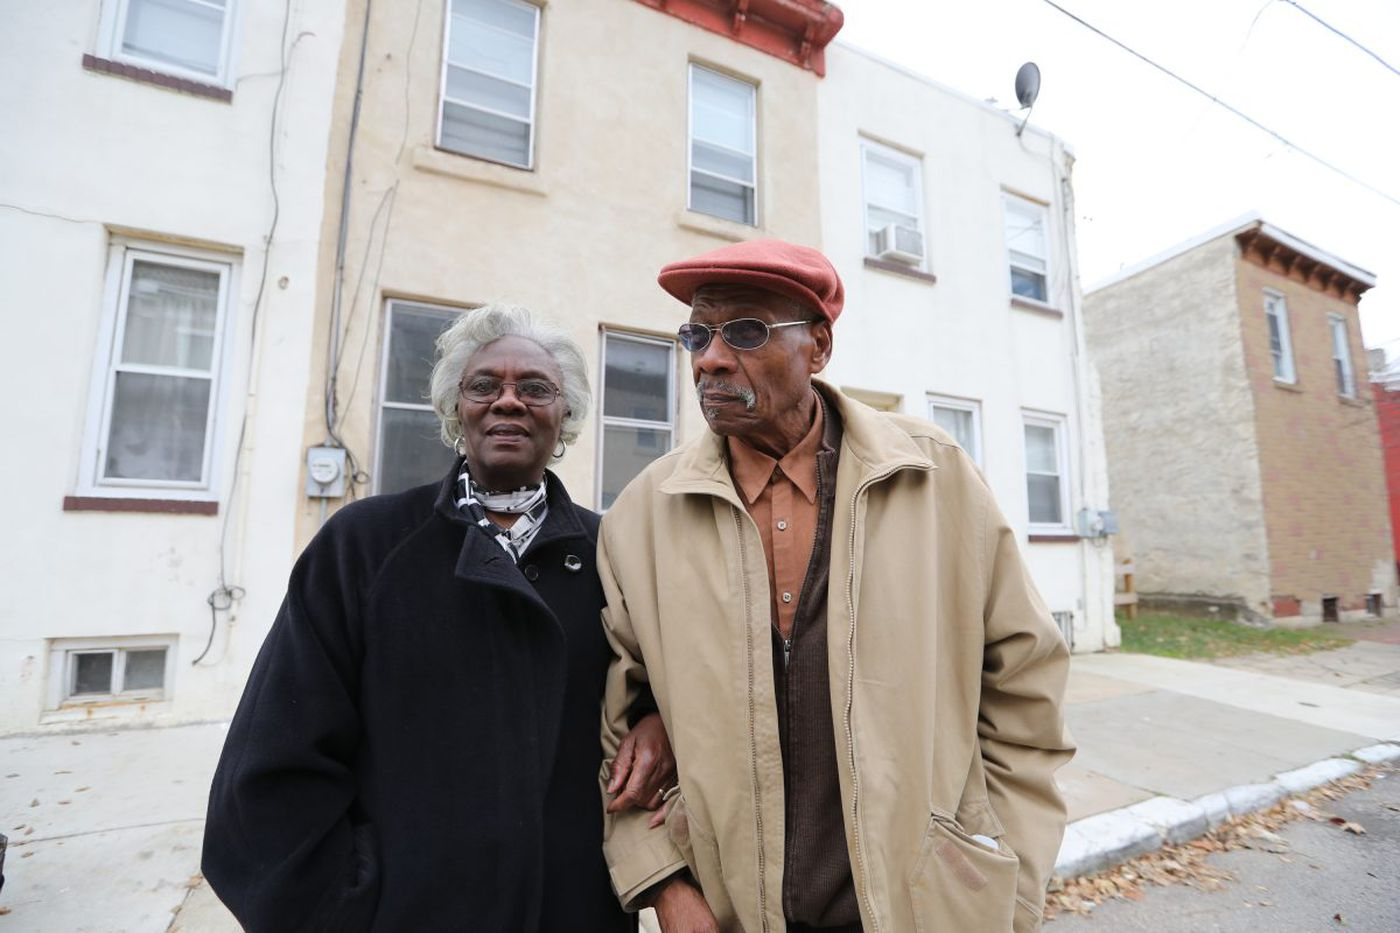 Philly Housing Authority took their homes two years ago. They are still waiting to get paid